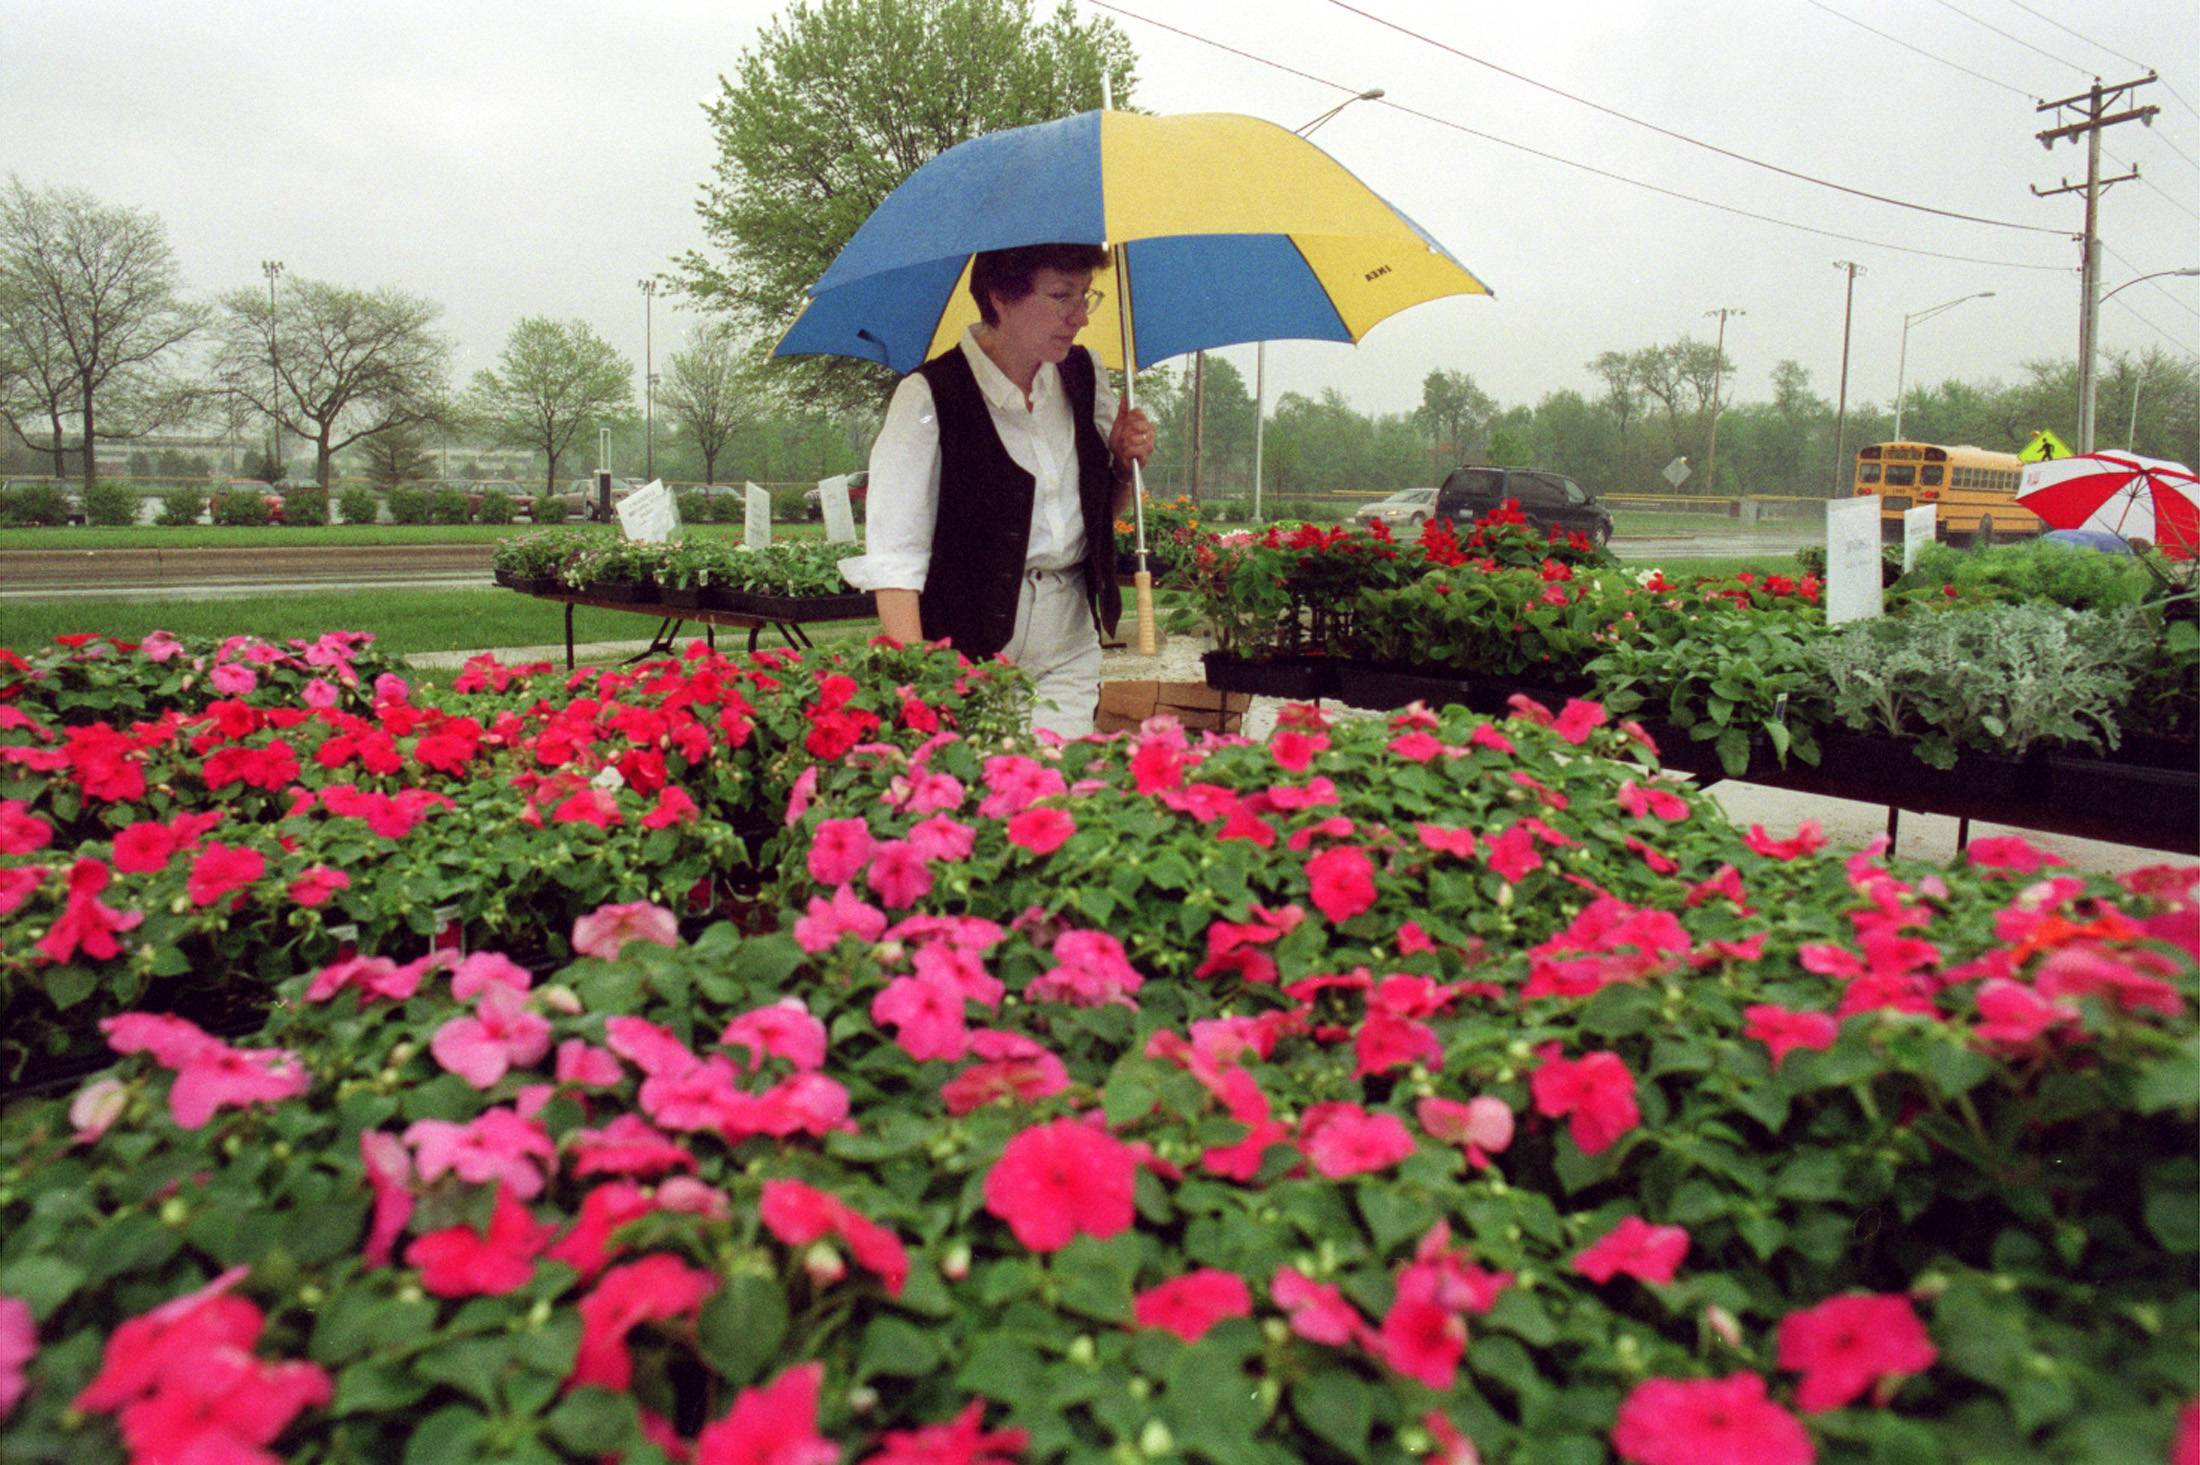 Rain or shine, flowers will be for sale at the Naperville Community Gardeners annual plant sale from 7:30 a.m. to 12:30 p.m. Saturday at the garden plots on West Street, near Martin Avenue. The plant sale is one of several events going on in or near downtown Naperville throughout Saturday.